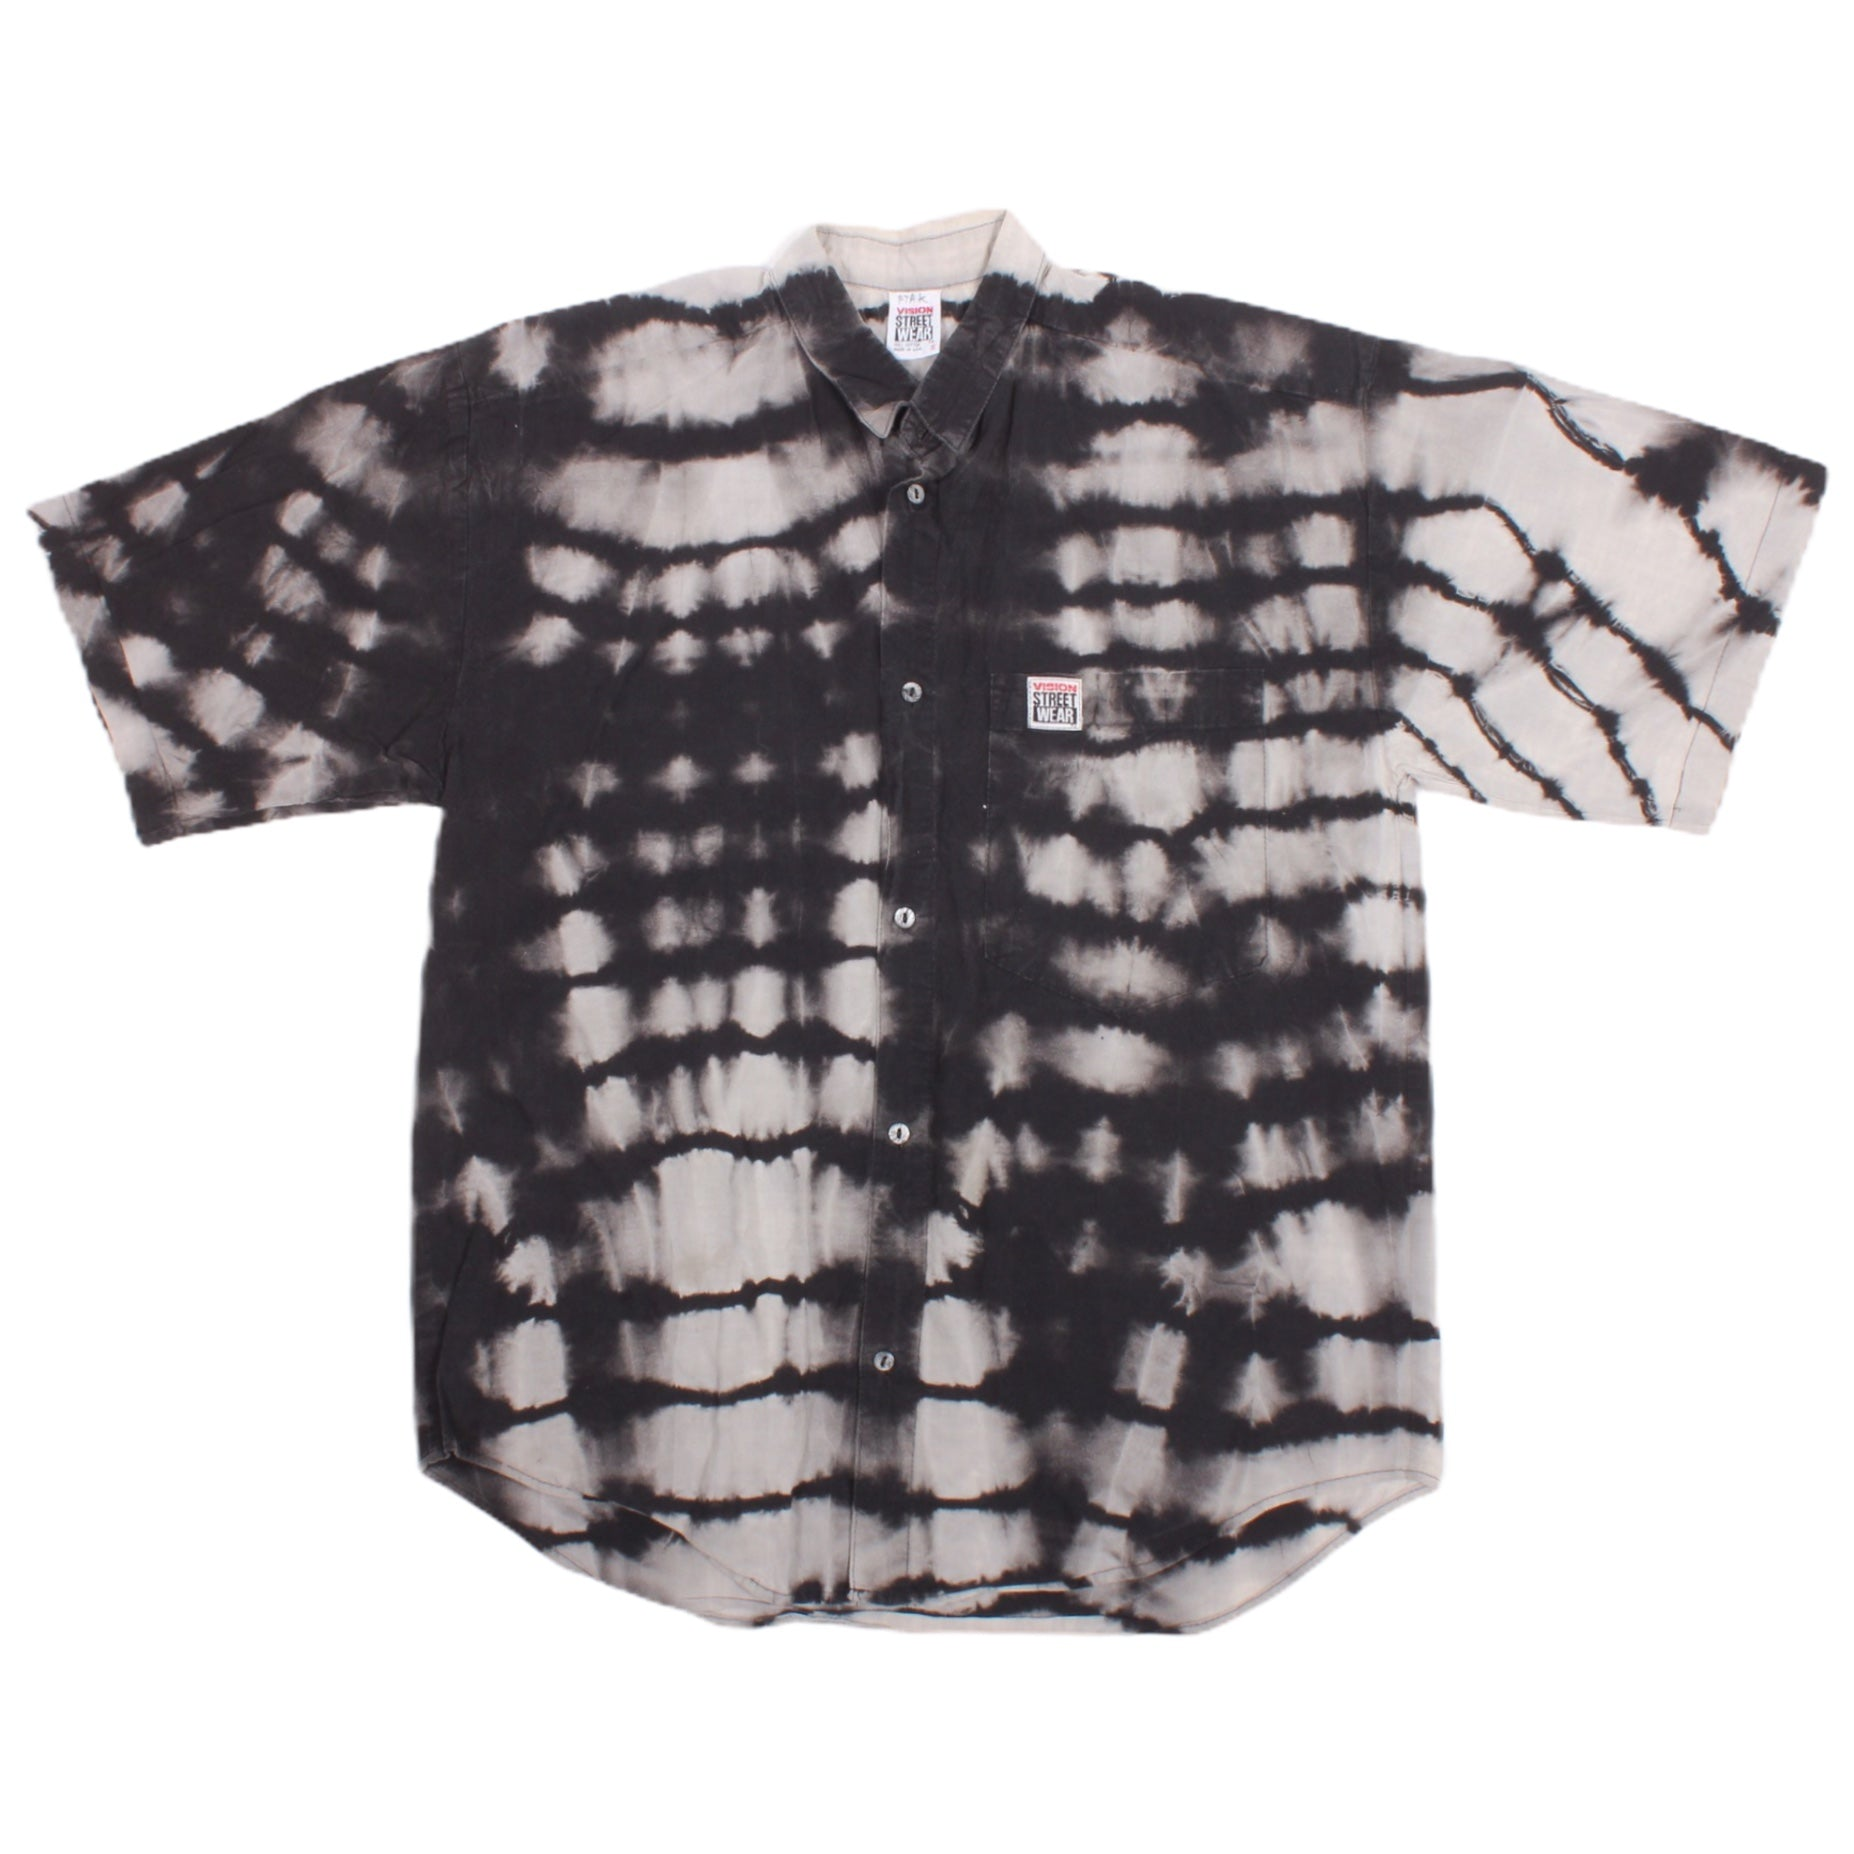 Overripe Vision Street Wear Button Up Black Acid Small (1990)